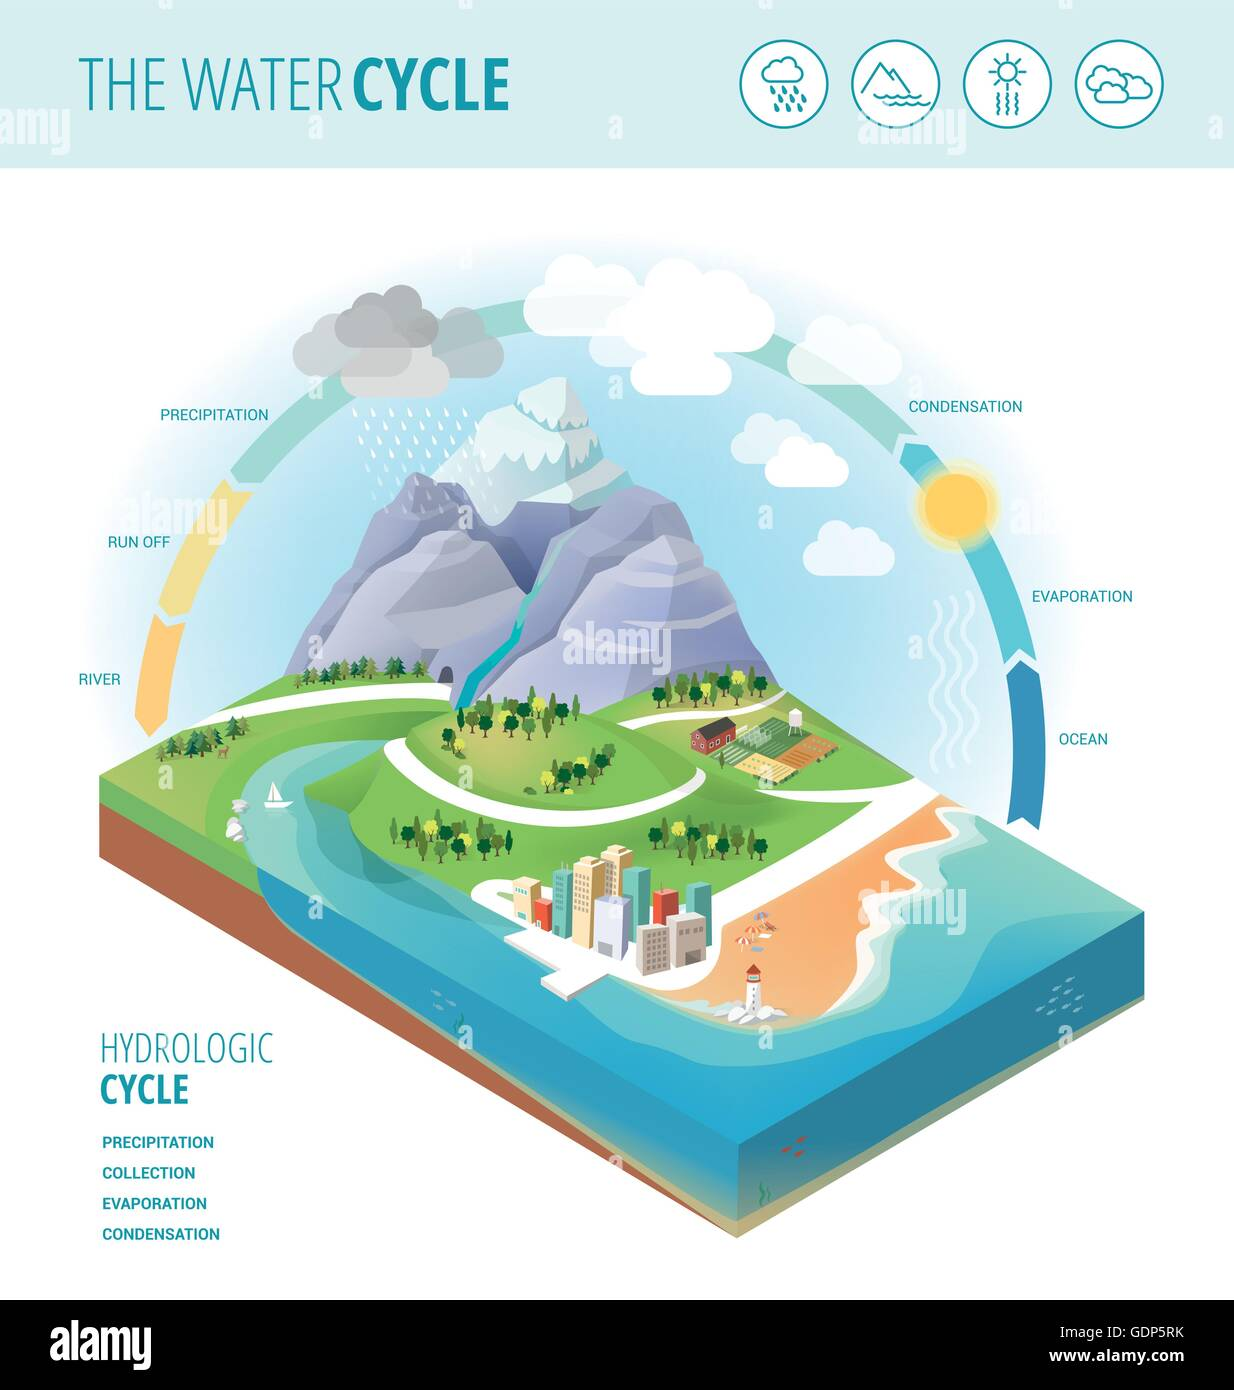 The water cycle diagram showing precipitation, collection, evaporation and condensation of water on a landscape - Stock Image